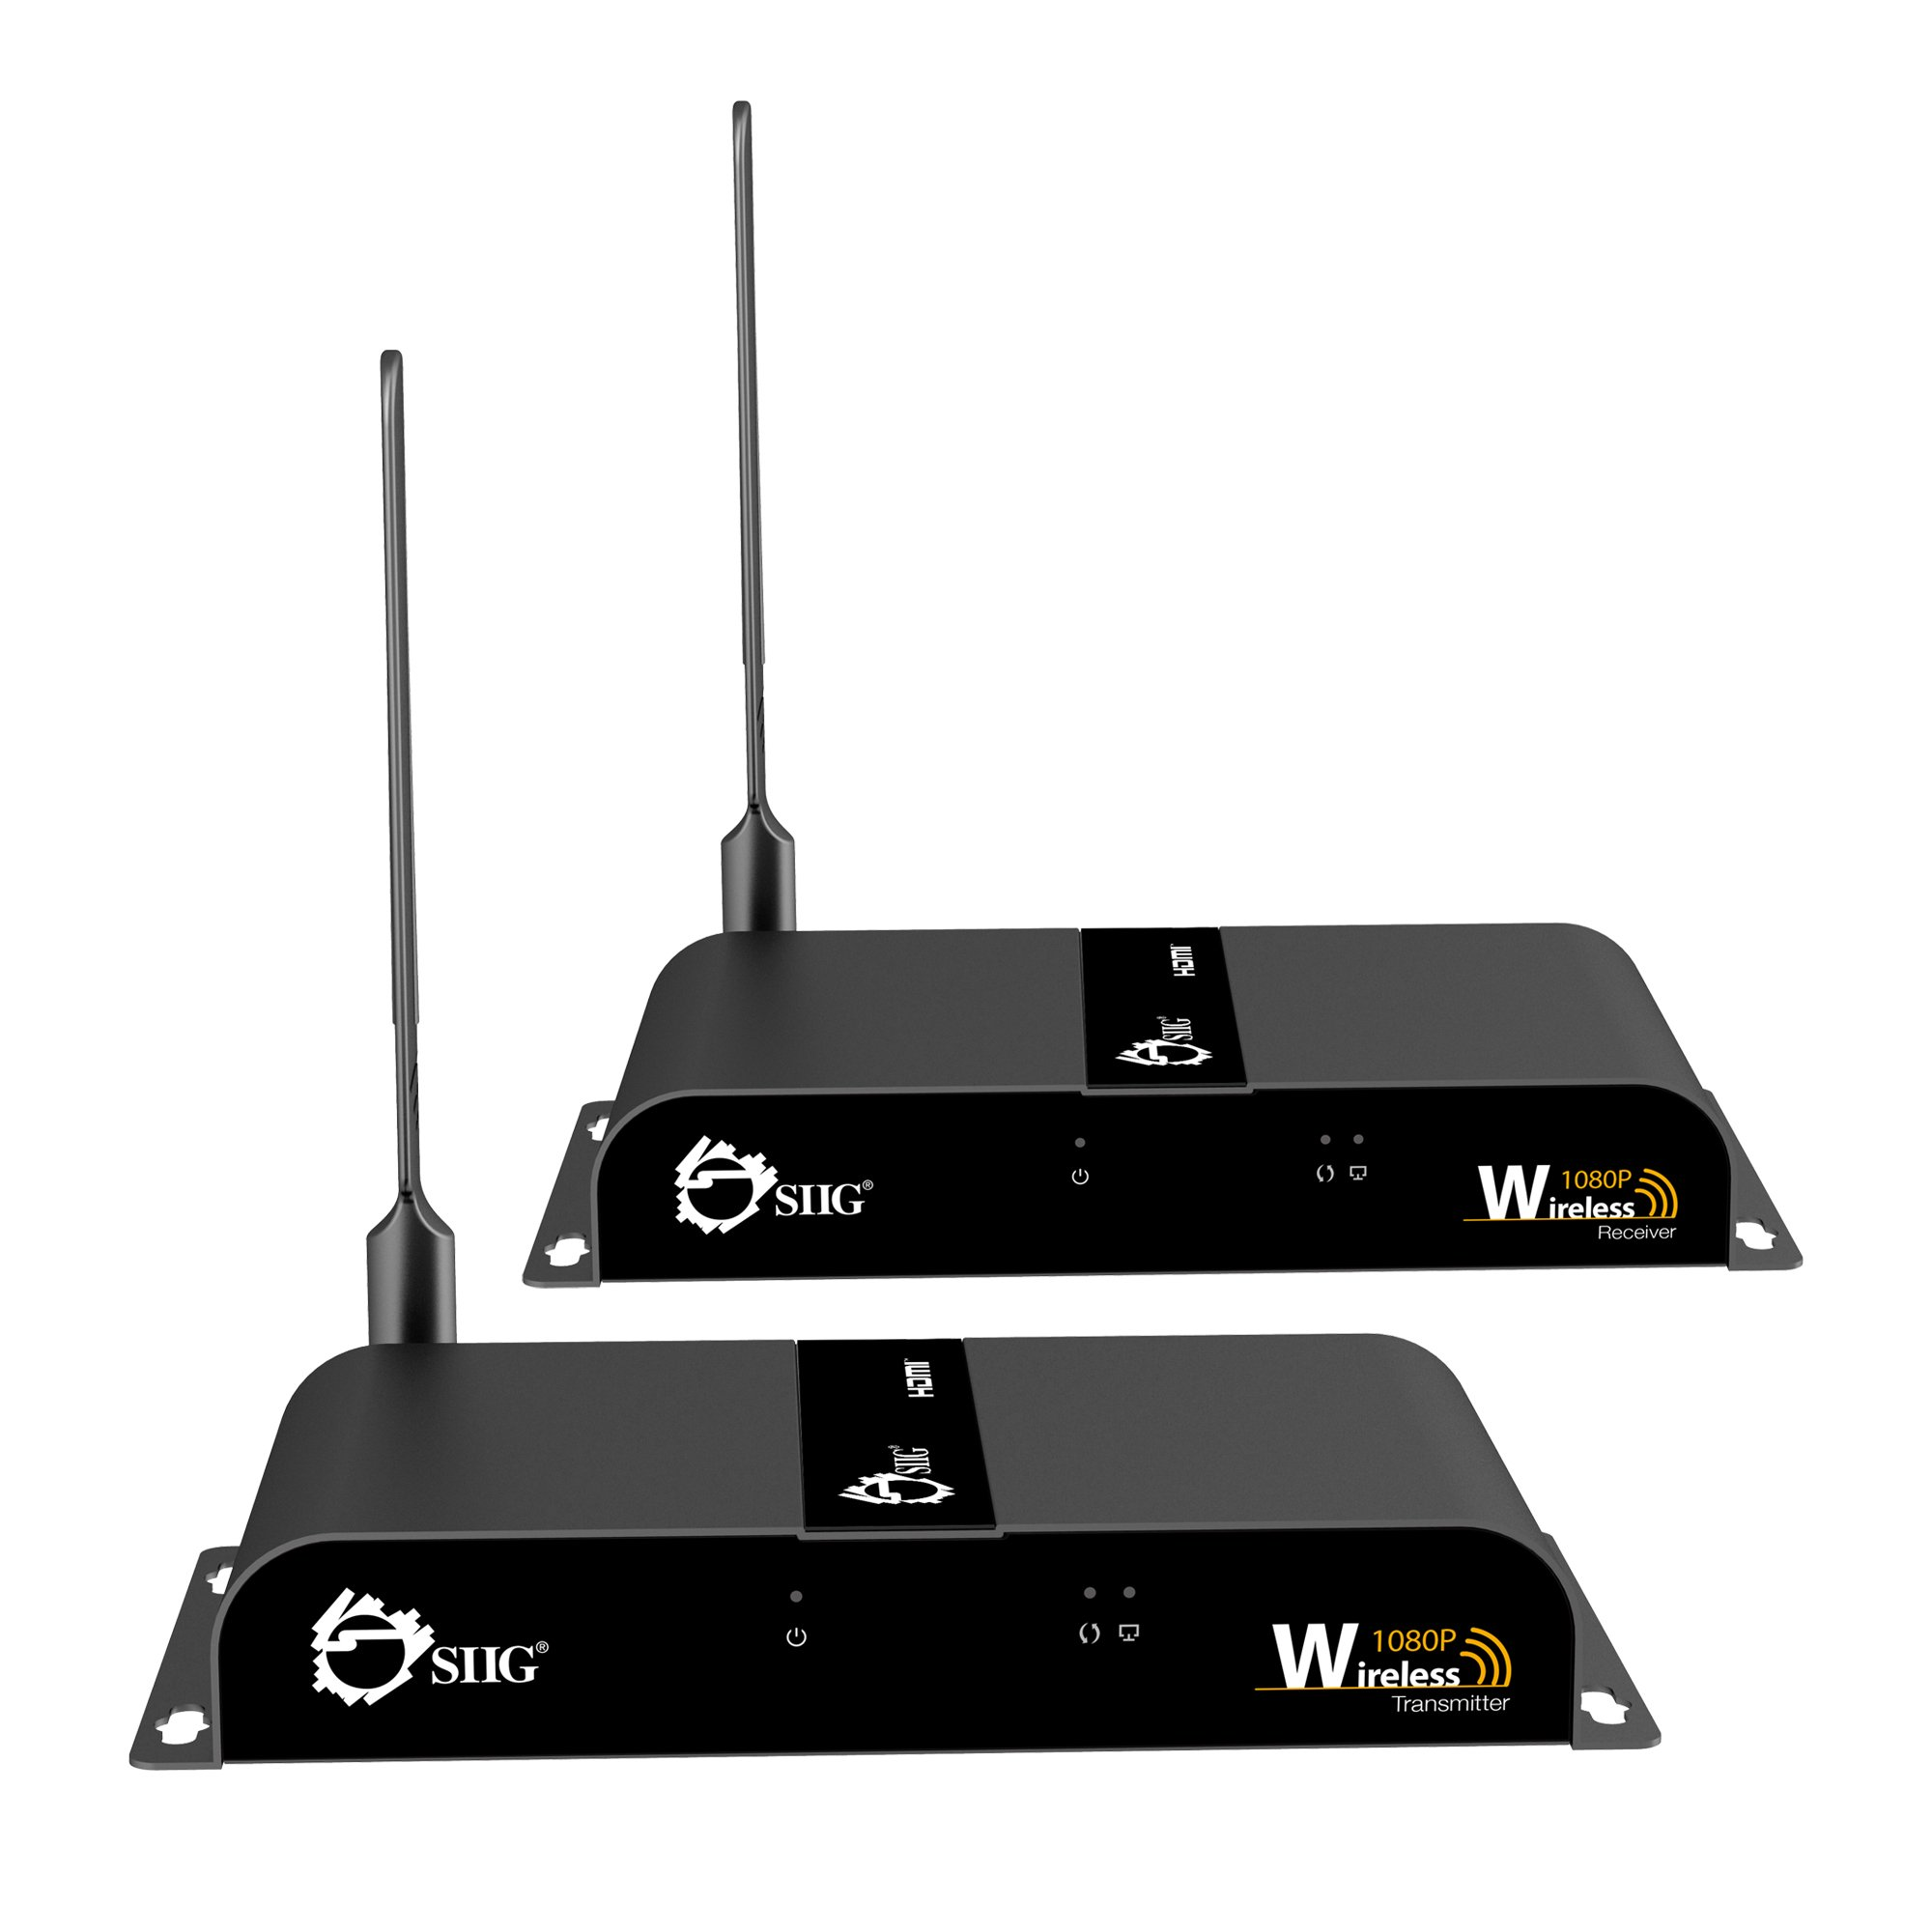 SIIG Wireless Wall-Mountable 1080P HDMI Extender Video Kit - 165 Feet (50 meters) - Version 2.0 With Wi-Fi Extension Antenna